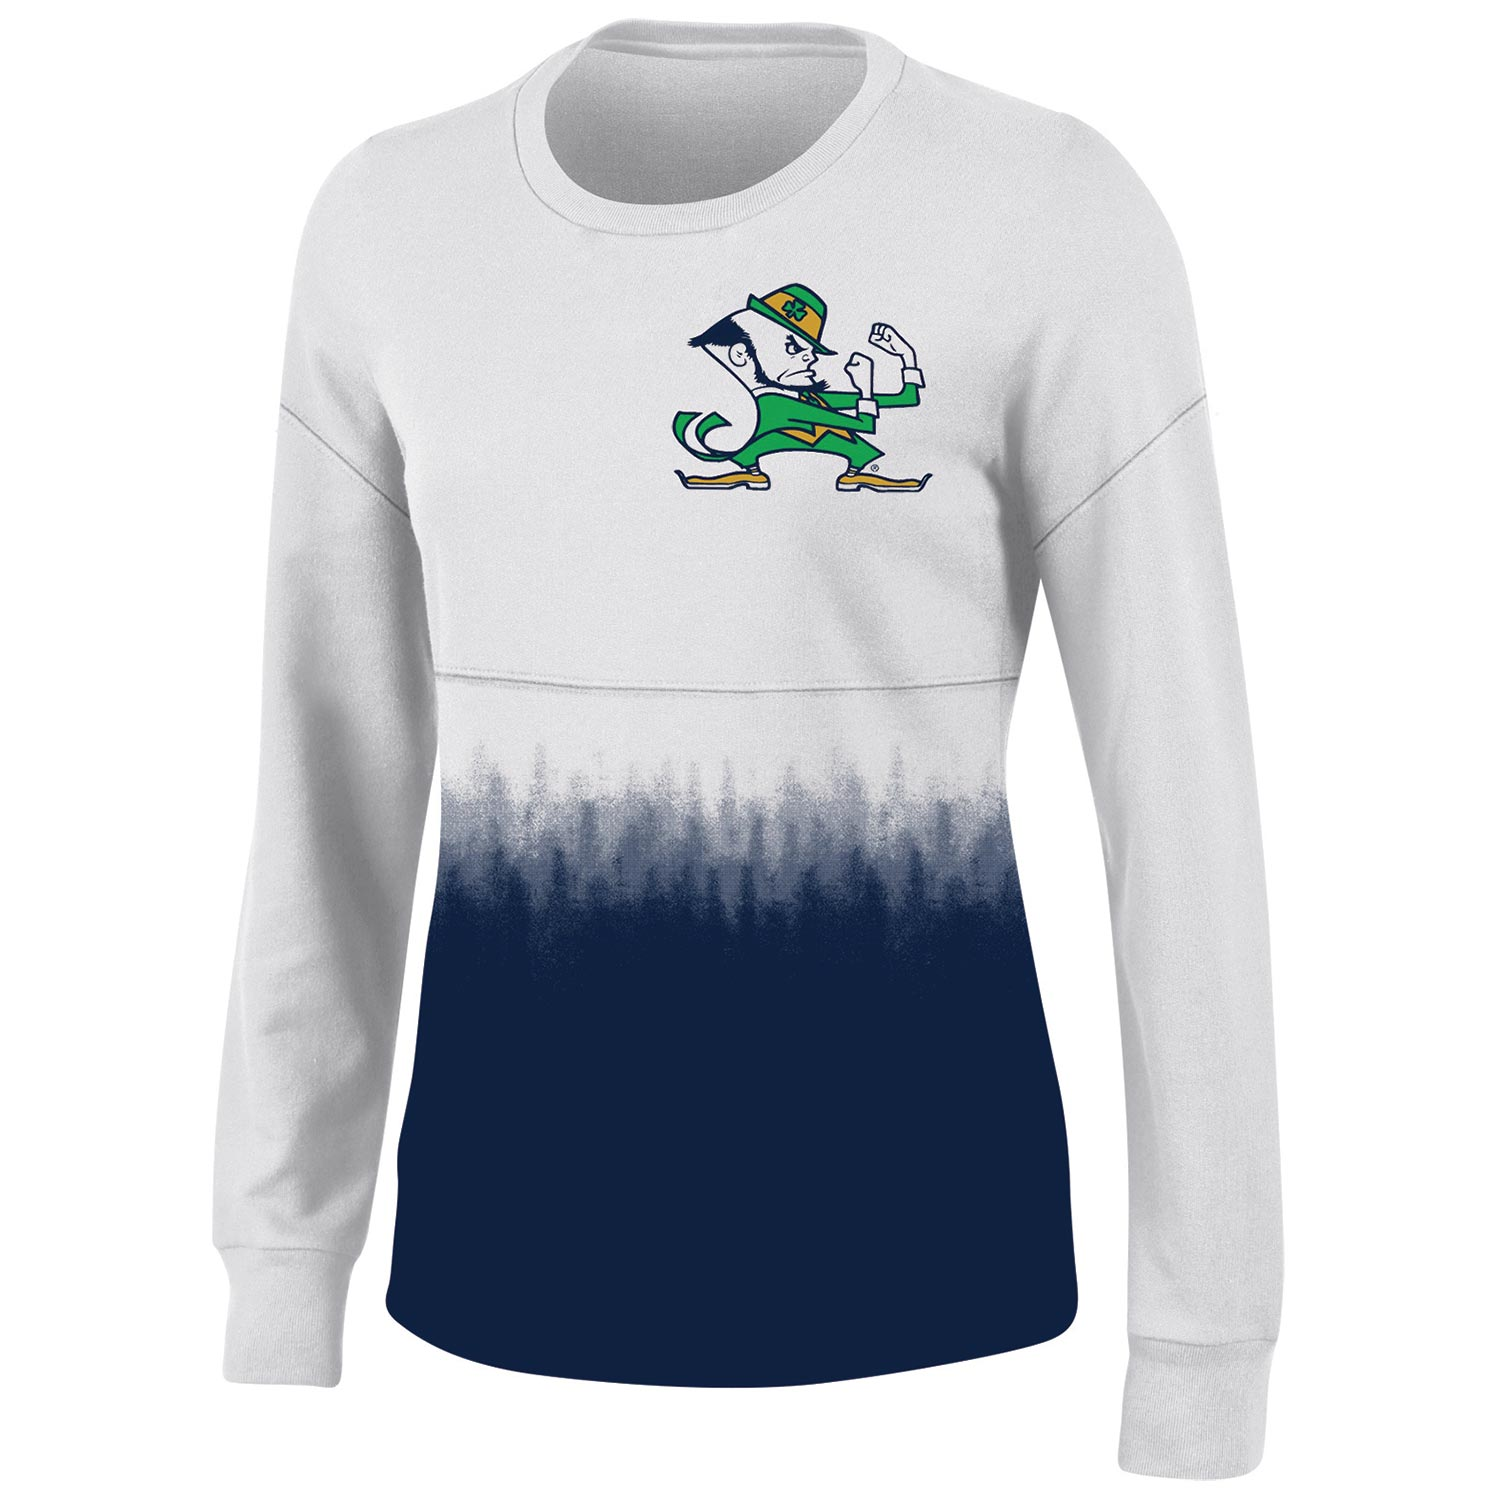 Women's White Notre Dame Fighting Irish Oversized Fan Long Sleeve T-Shirt